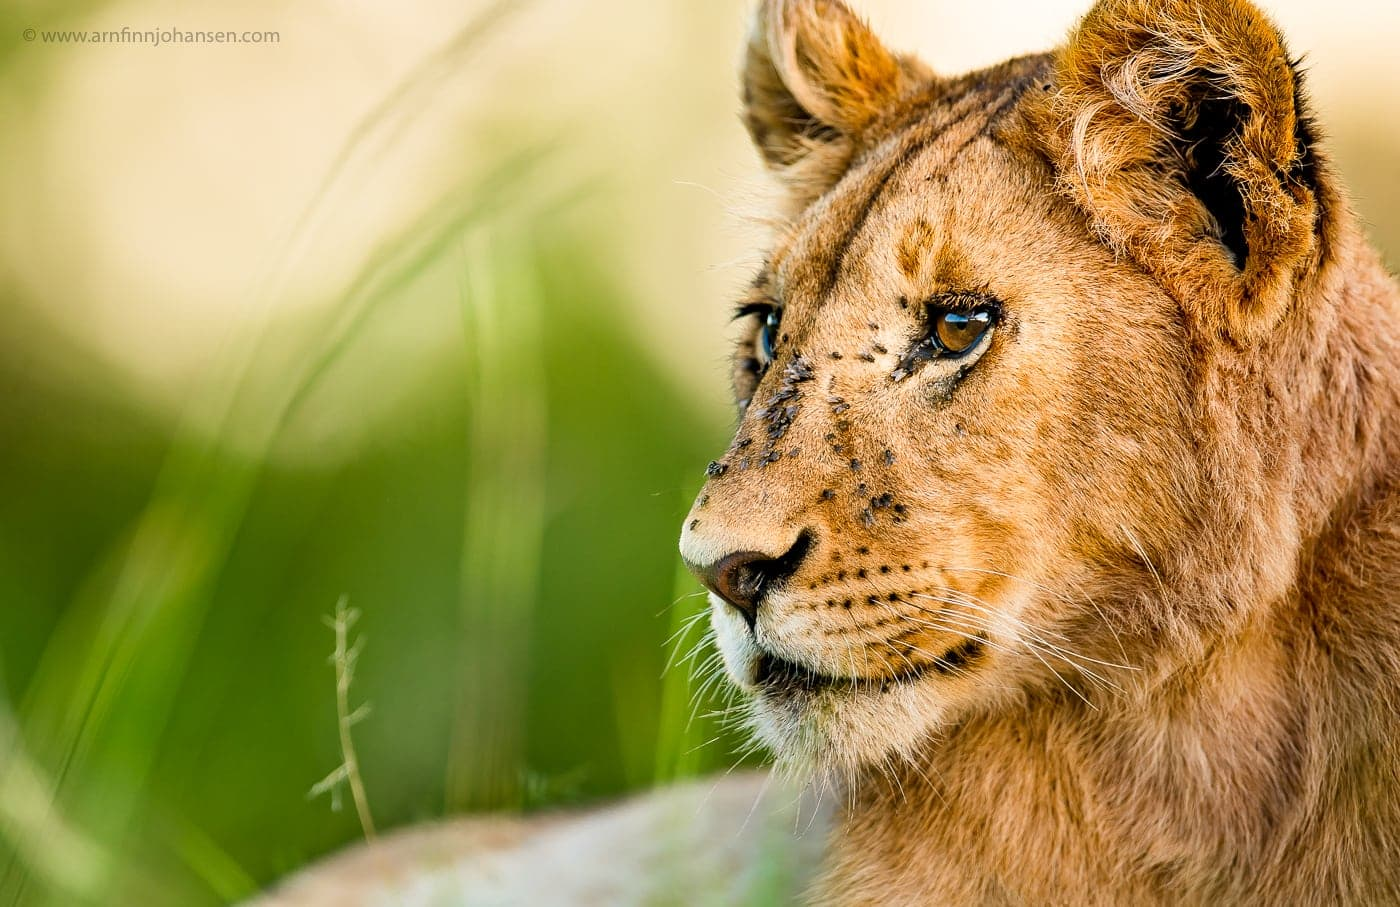 A Lioness Photographed In The Locations To Be Used For The NaturesLens Wildlife Of Africas Maasai Mara Photography Holiday